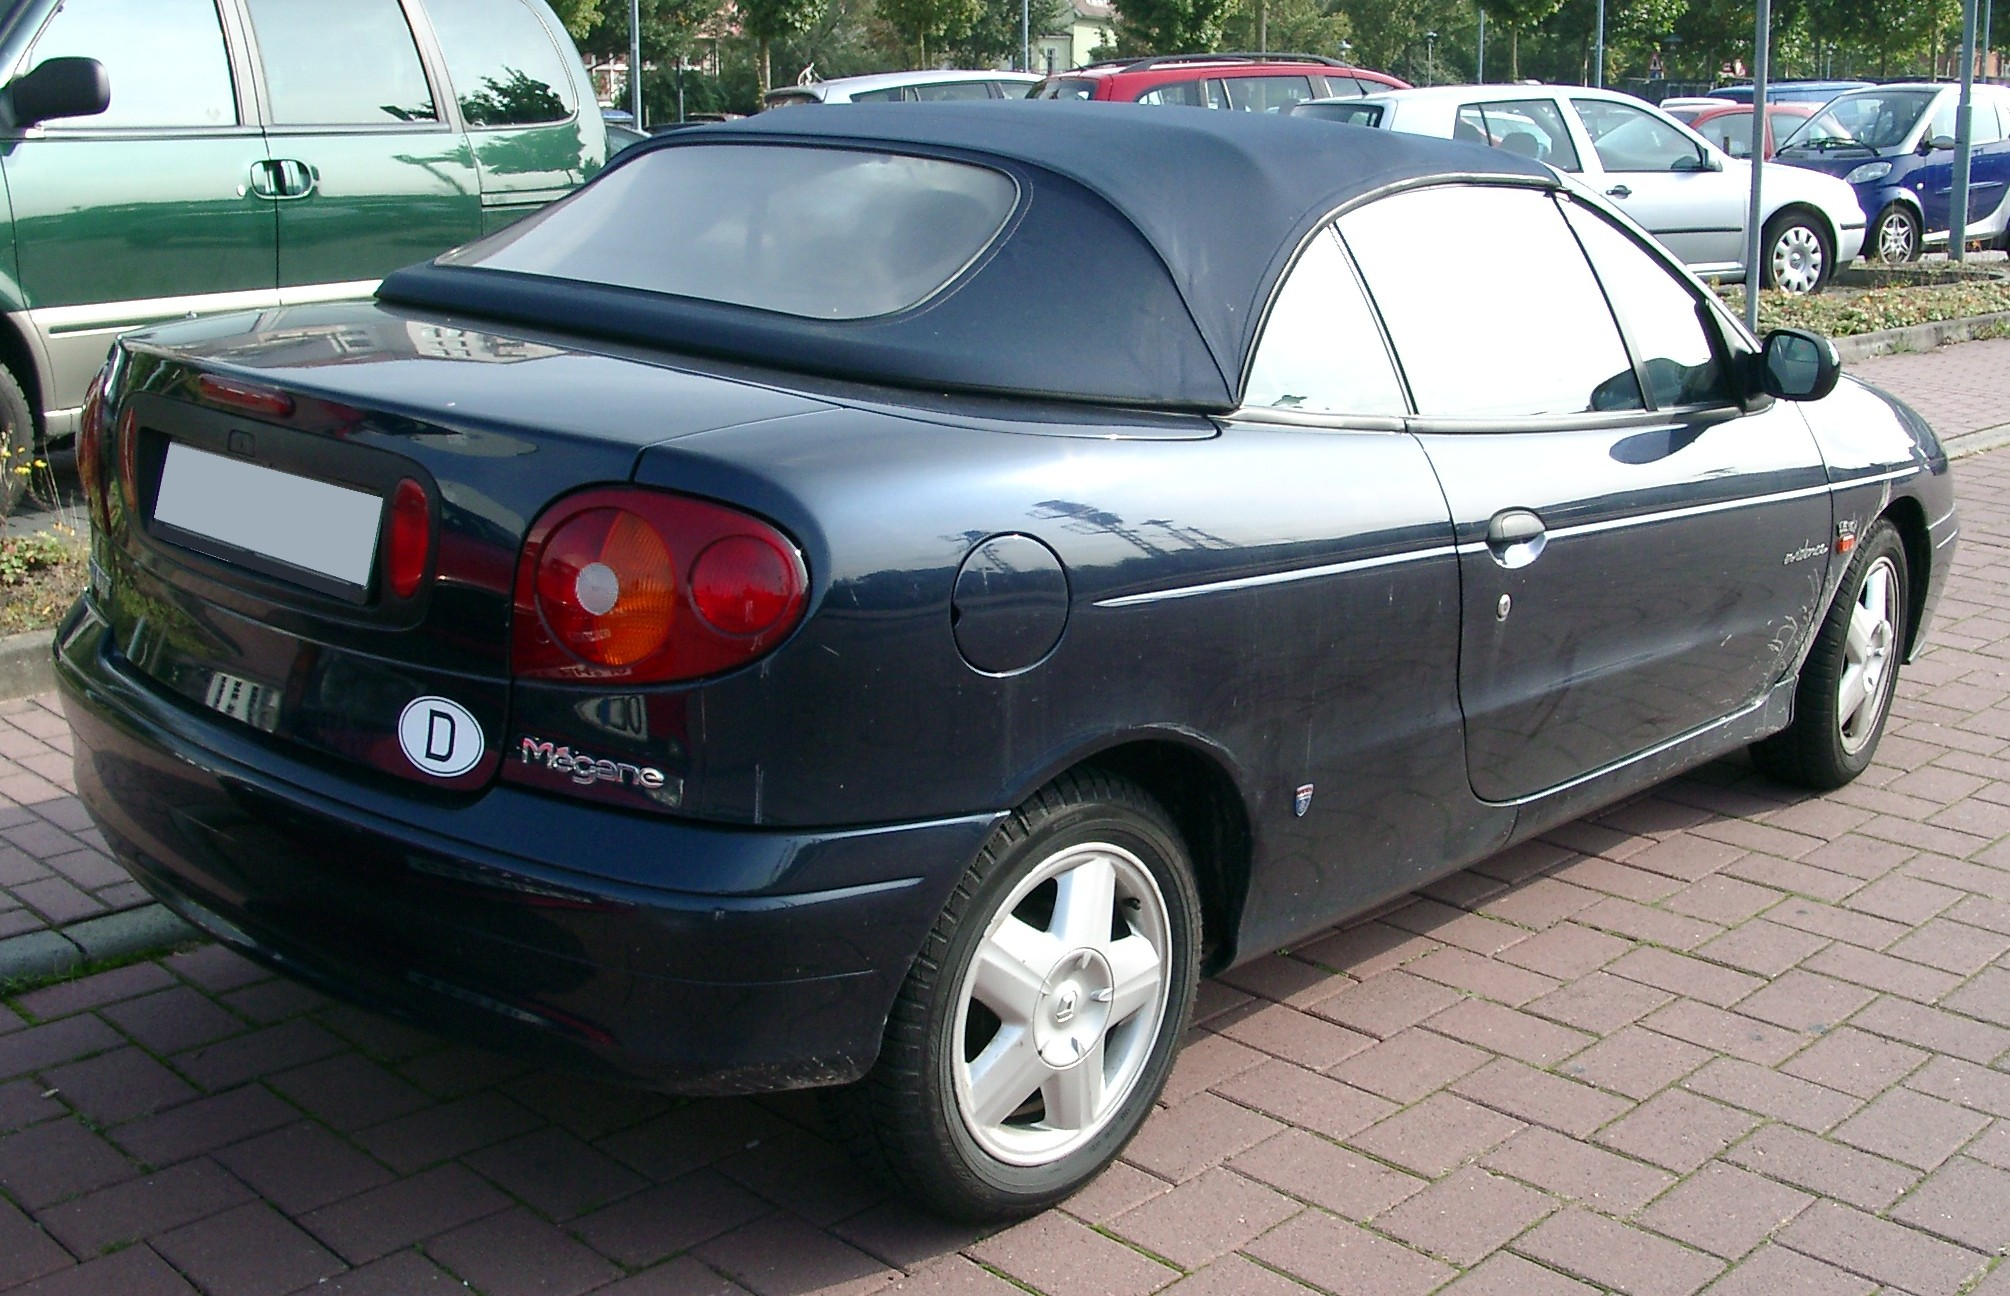 File Renault Megane Cabrio Rear 20071004 Jpg Wikimedia Commons